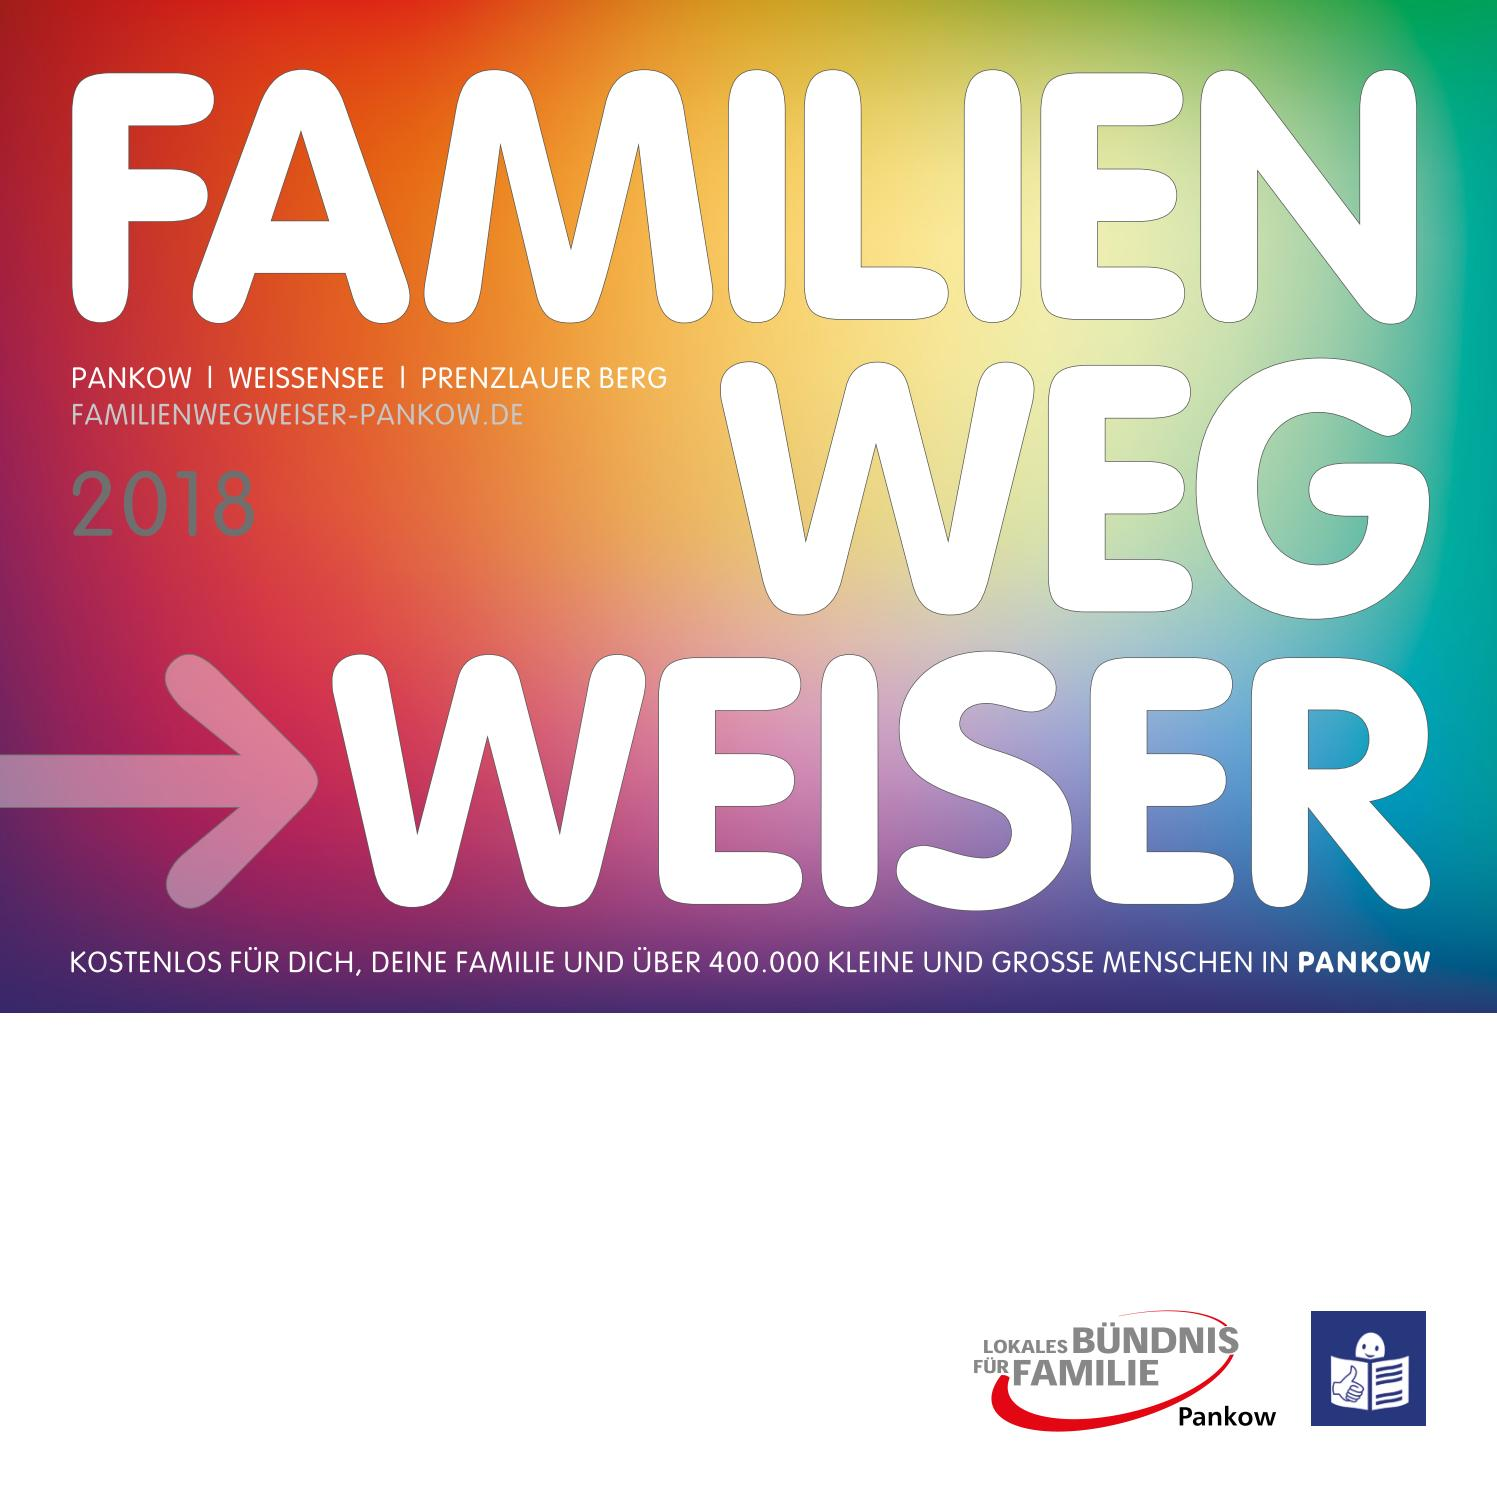 Familienwegweiser Pankow 2018 by IN TOUCH VERLAG - issuu